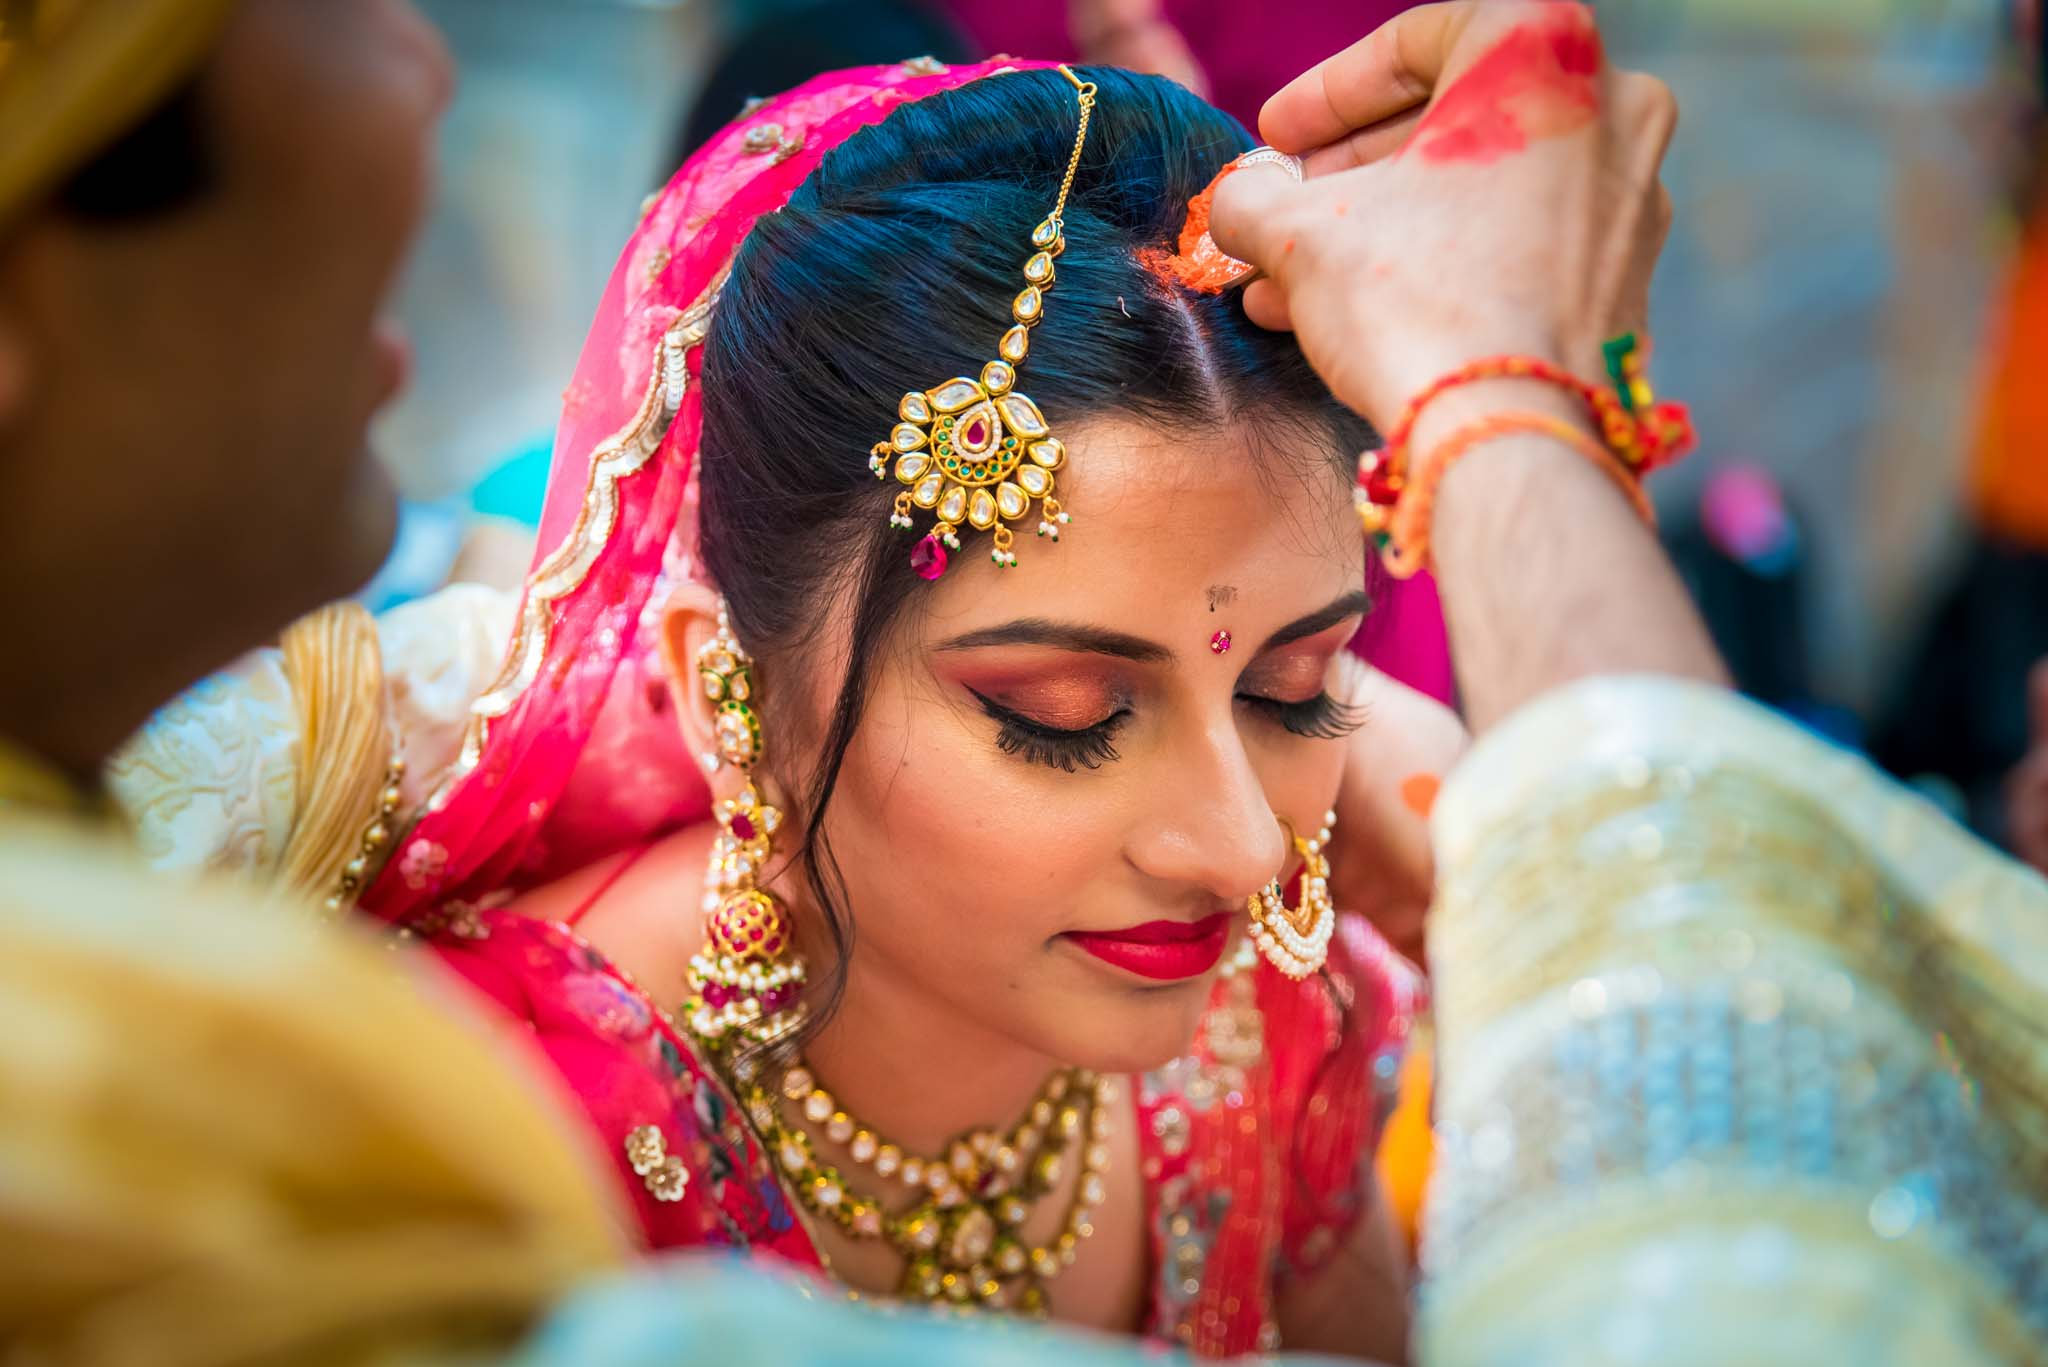 Candid-Wedding-Photography-Nagpur-Destination-90